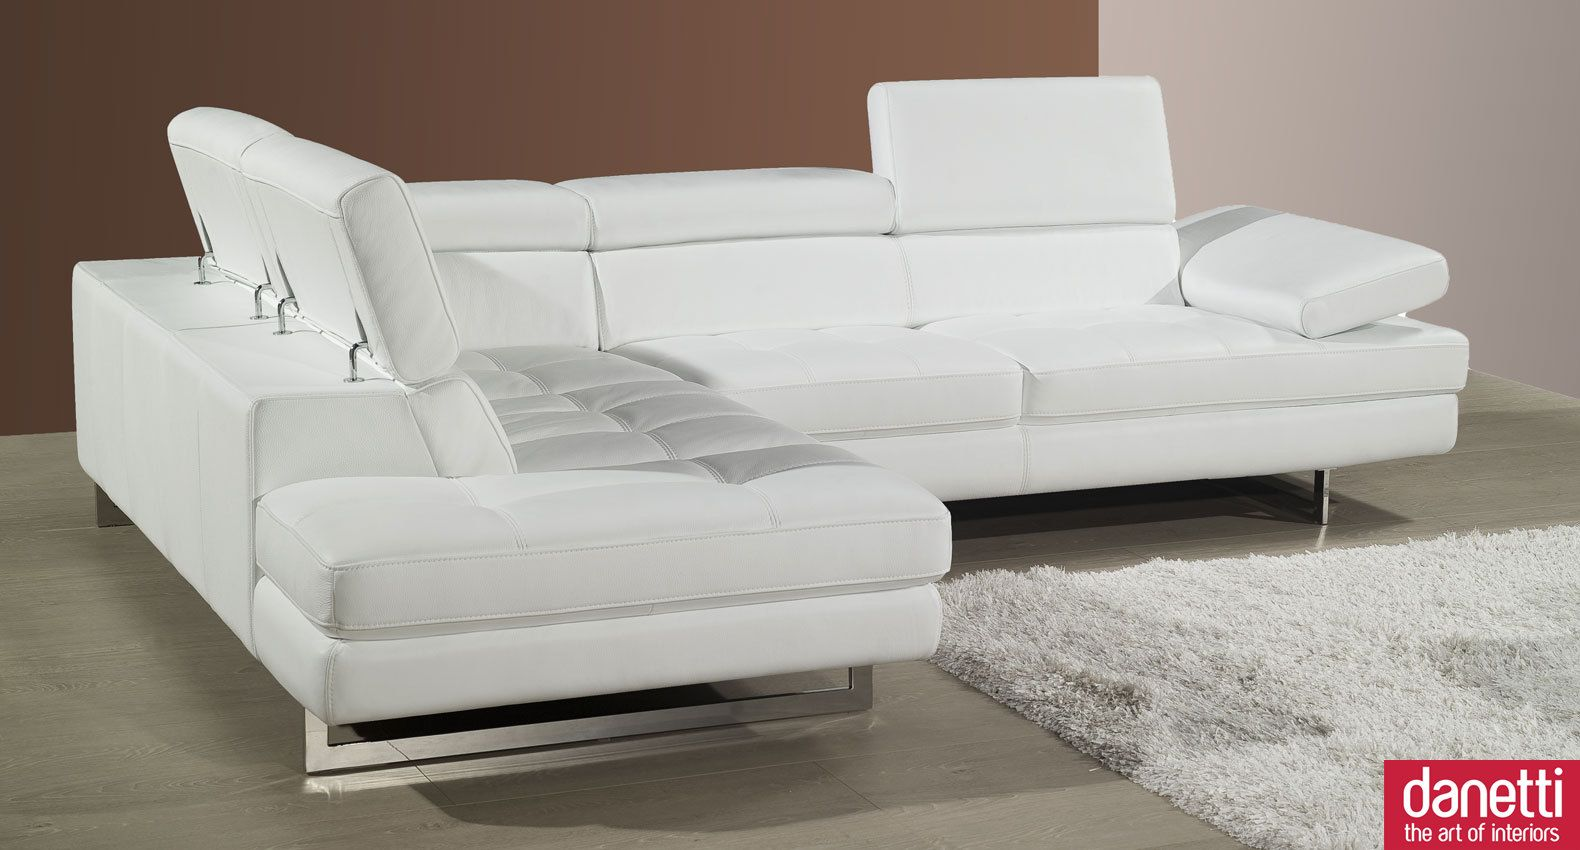 Modern White Leather CouchImage Gallery | Image Gallery